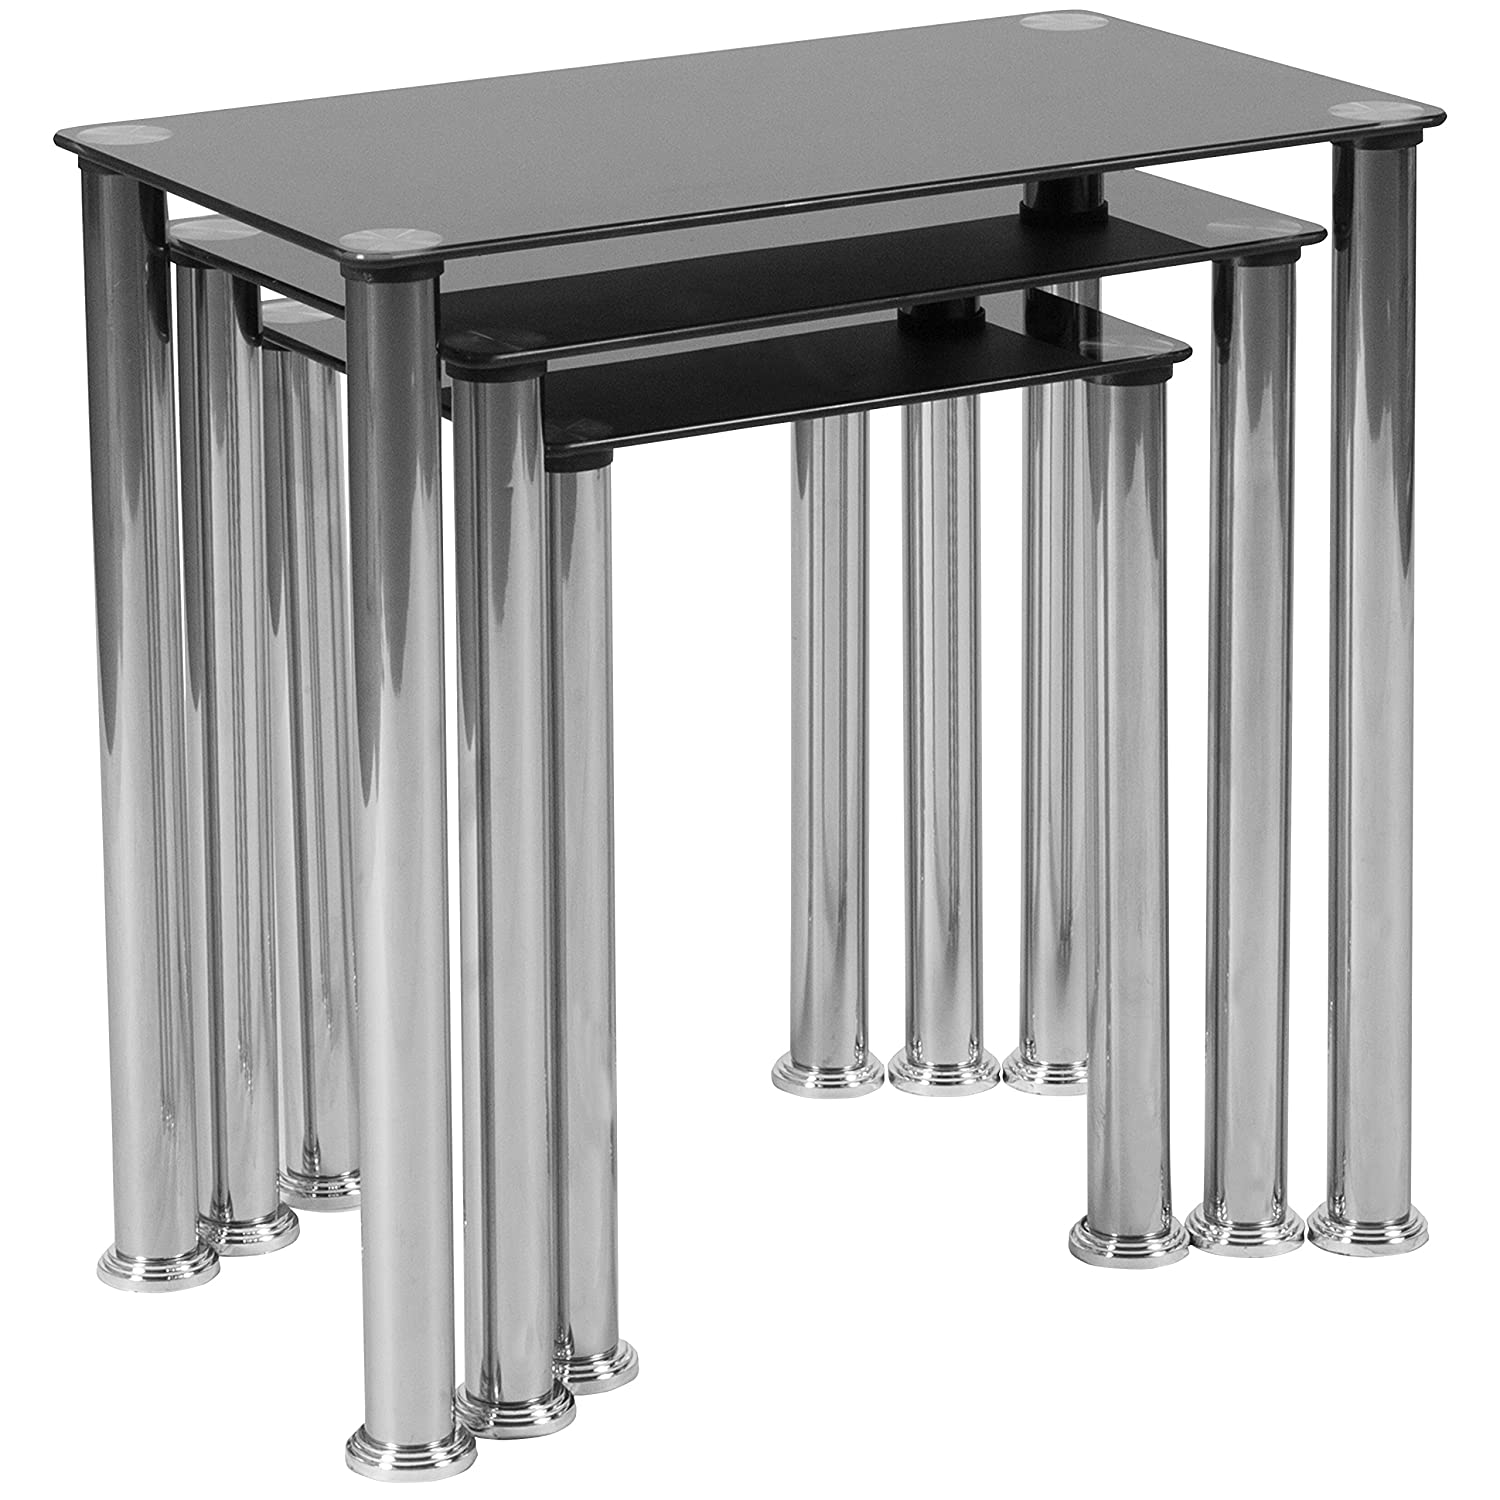 Flash Furniture Riverside Collection Black Glass Nesting Tables with Stainless Steel Legs, HG-112349-GG